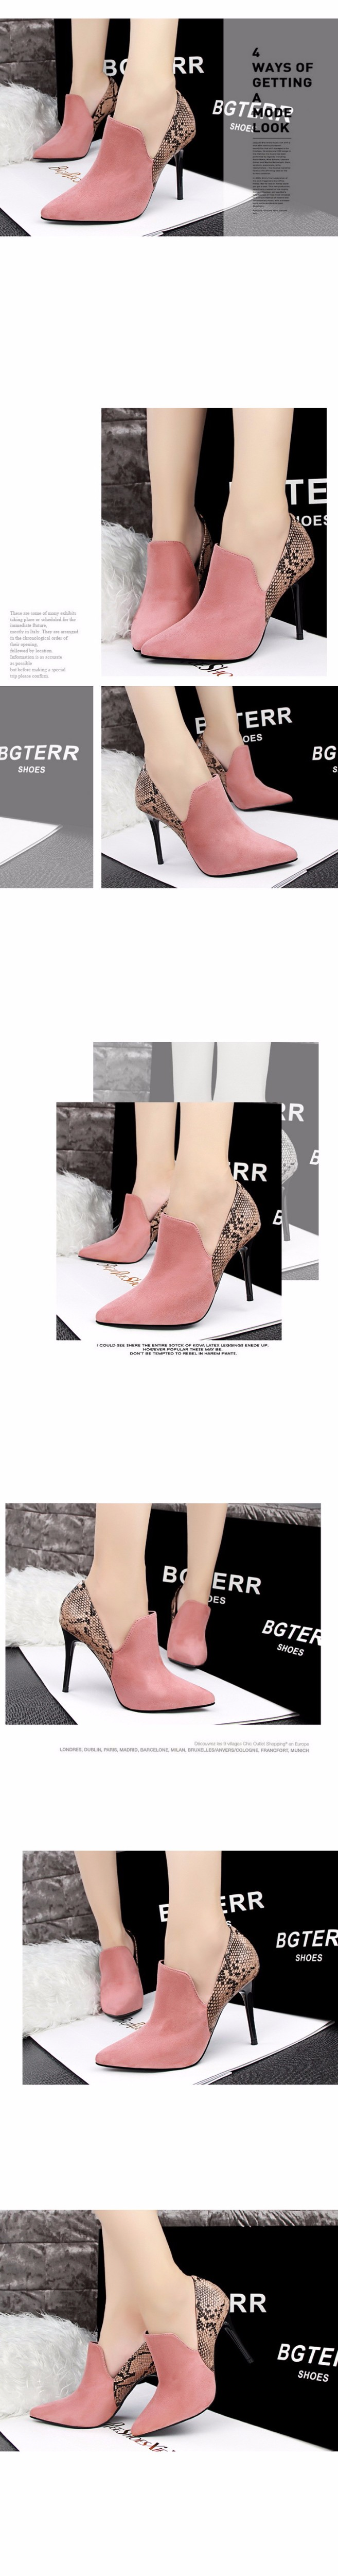 2016 New free shipping women fashion sexy personality hollow stitching fine with high-heeled shoes Wedding Banquet Shoes ZM 3.5